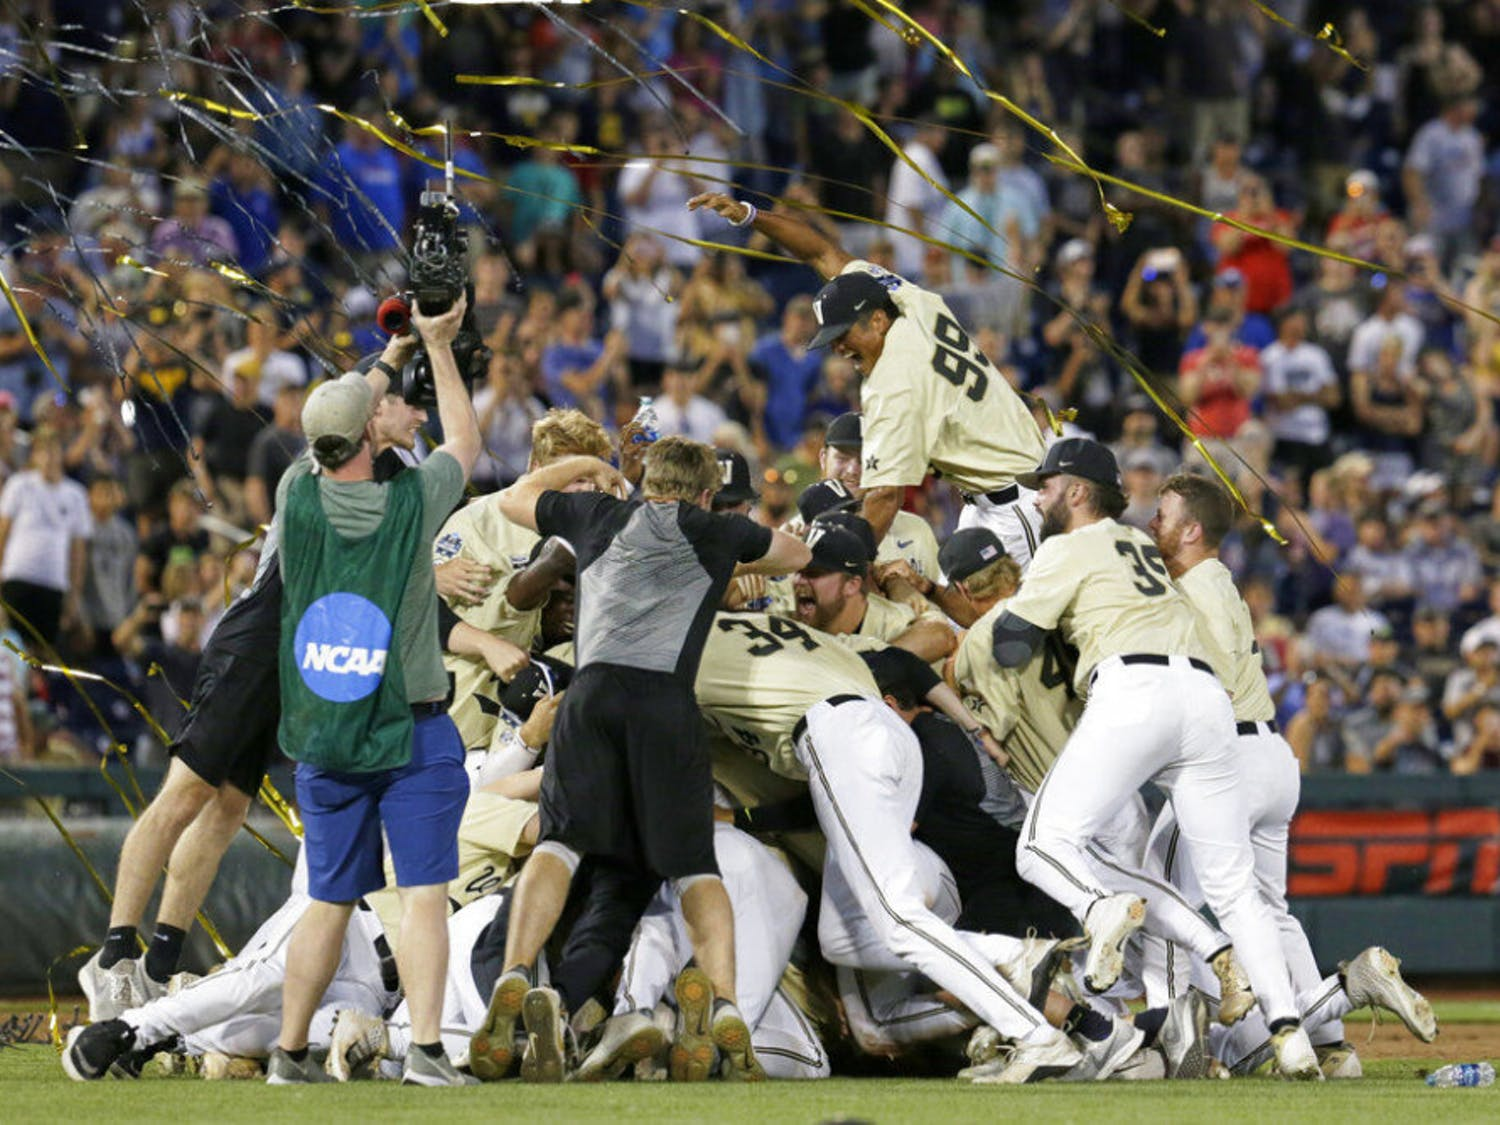 FILE - In this June 26, 2019, file photo, Vanderbilt players celebrate winning Game 3 and the champinship of the NCAA College World Series baseball finals against Michigan in Omaha, Neb. If not for the coronavirus pandemic, there would have been a World Series championship series Omaha, Nebraska. (AP Photo/Nati Harnik, File)